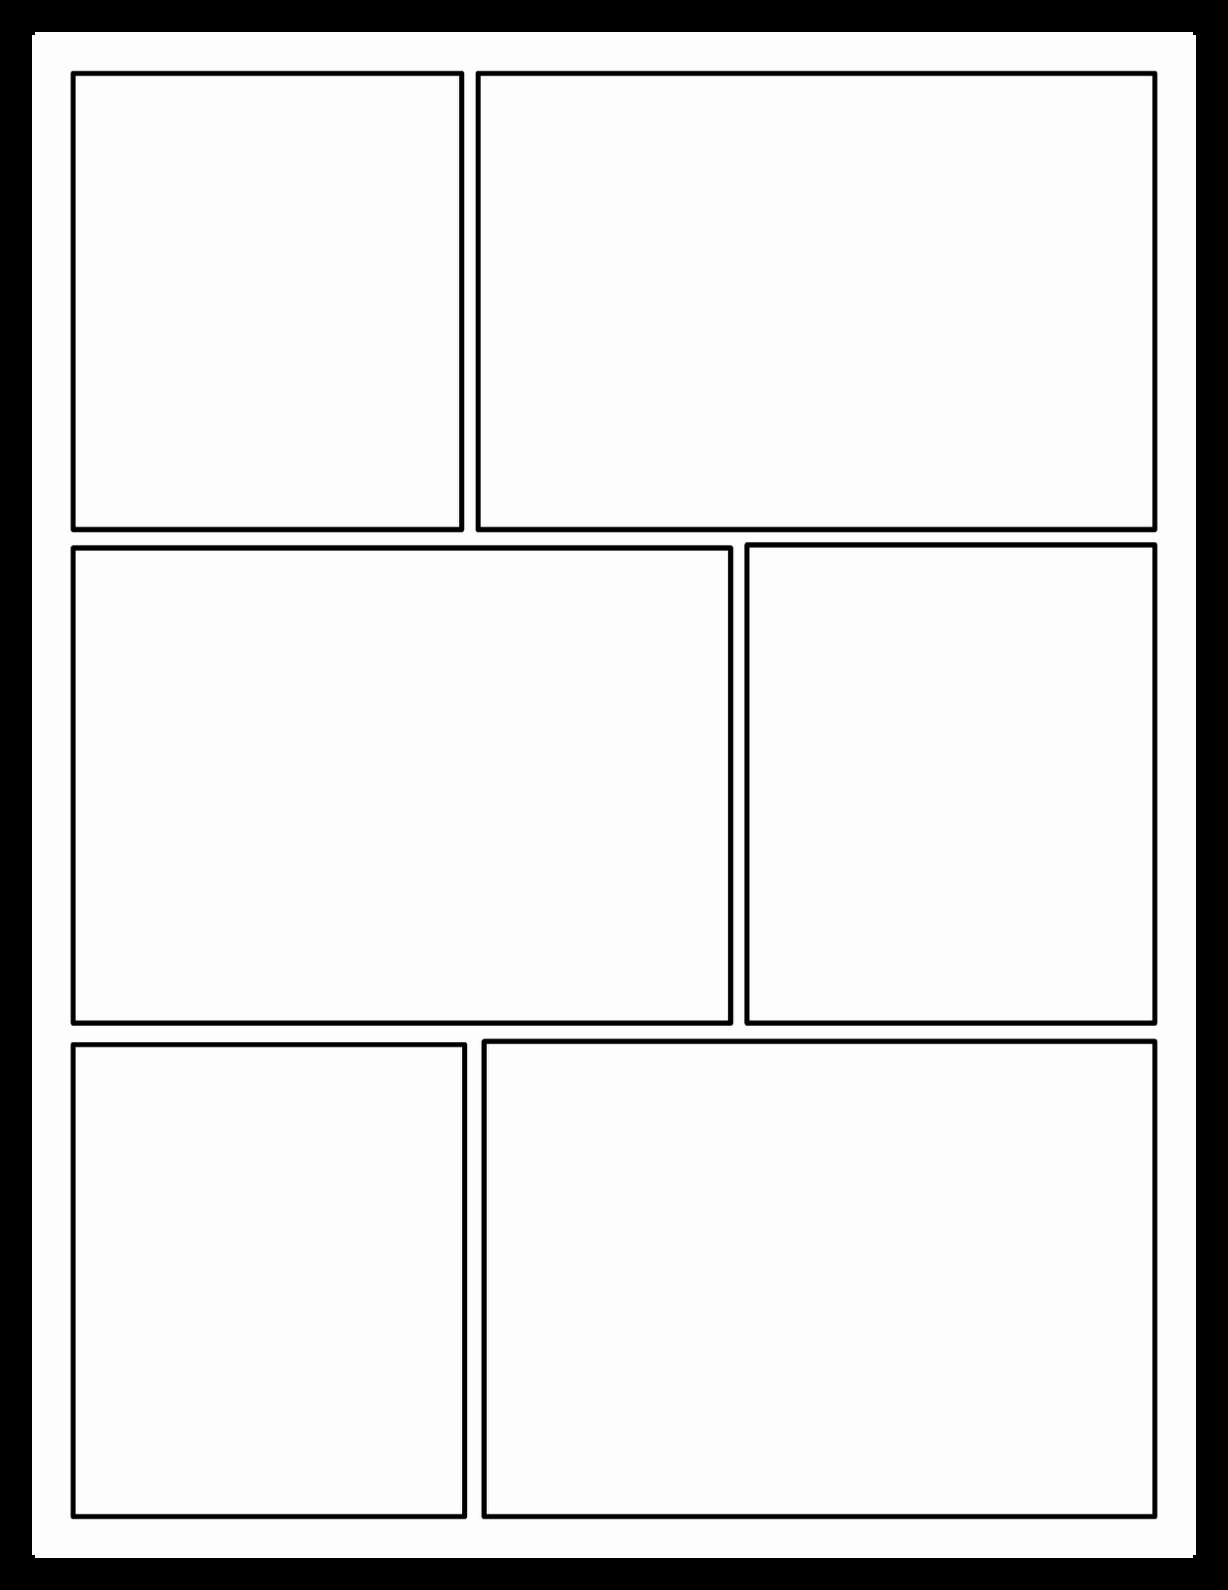 Comic Book Template Pdf Inspirational Mr Loughran S Visual Arts Classes Blog